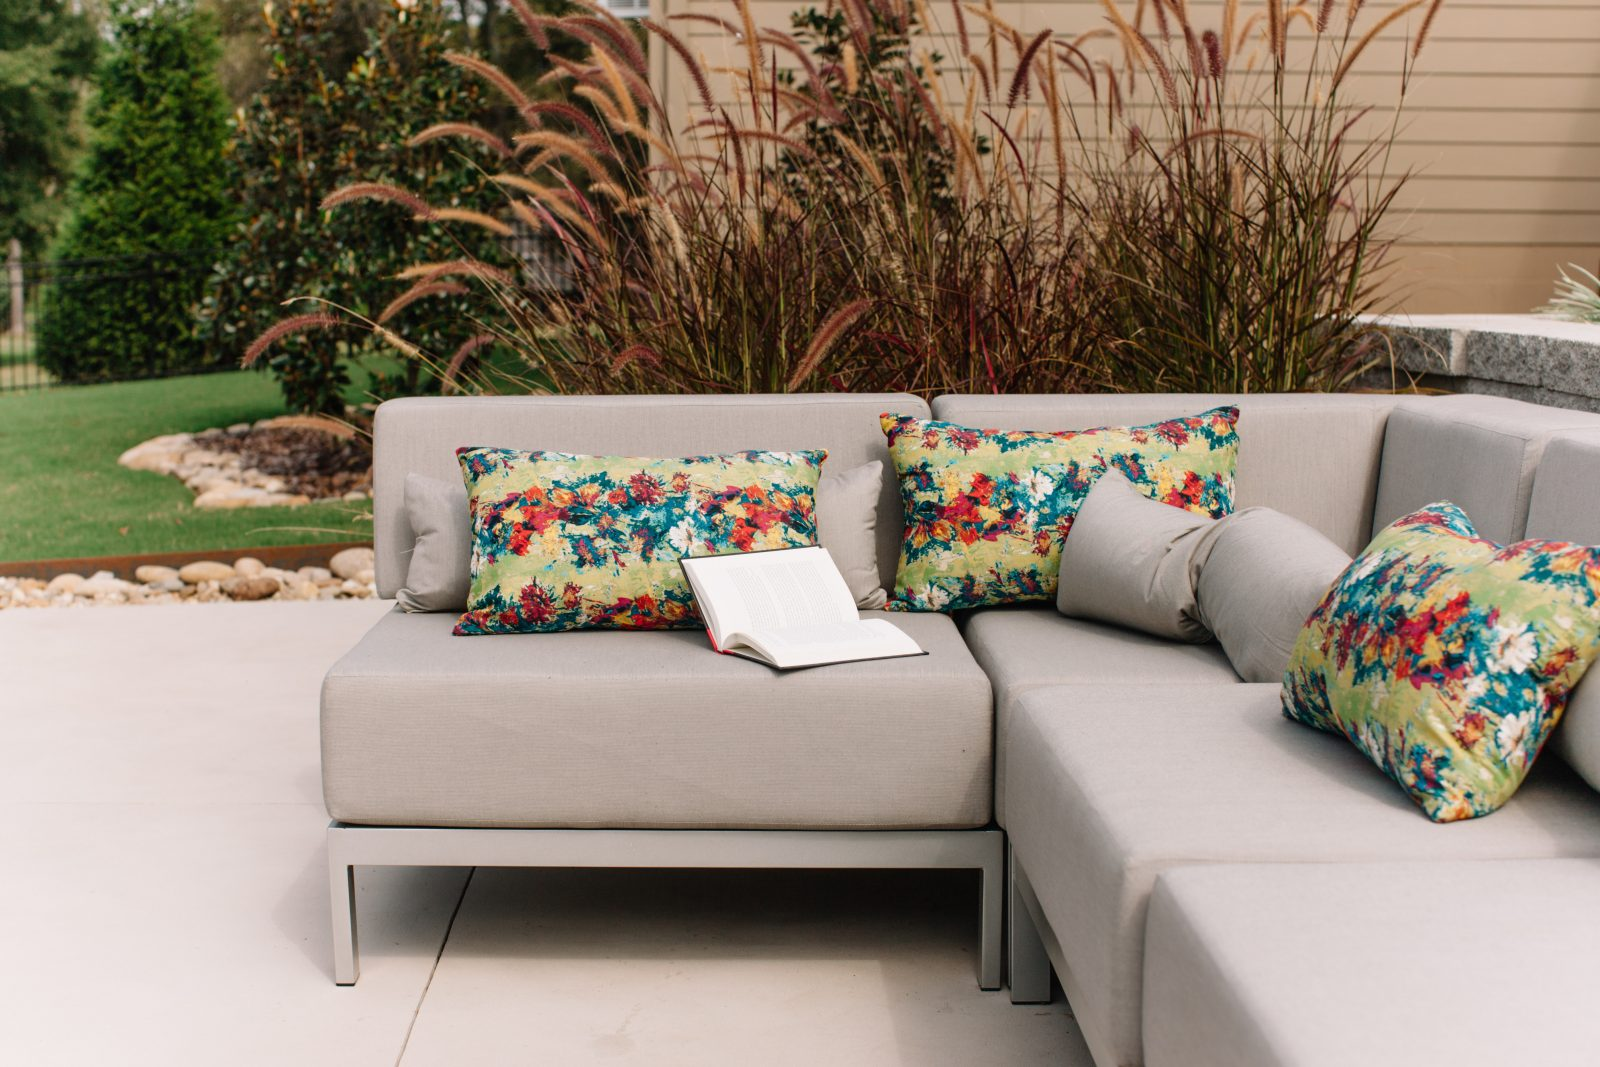 Sectional grey couch with floral pillows